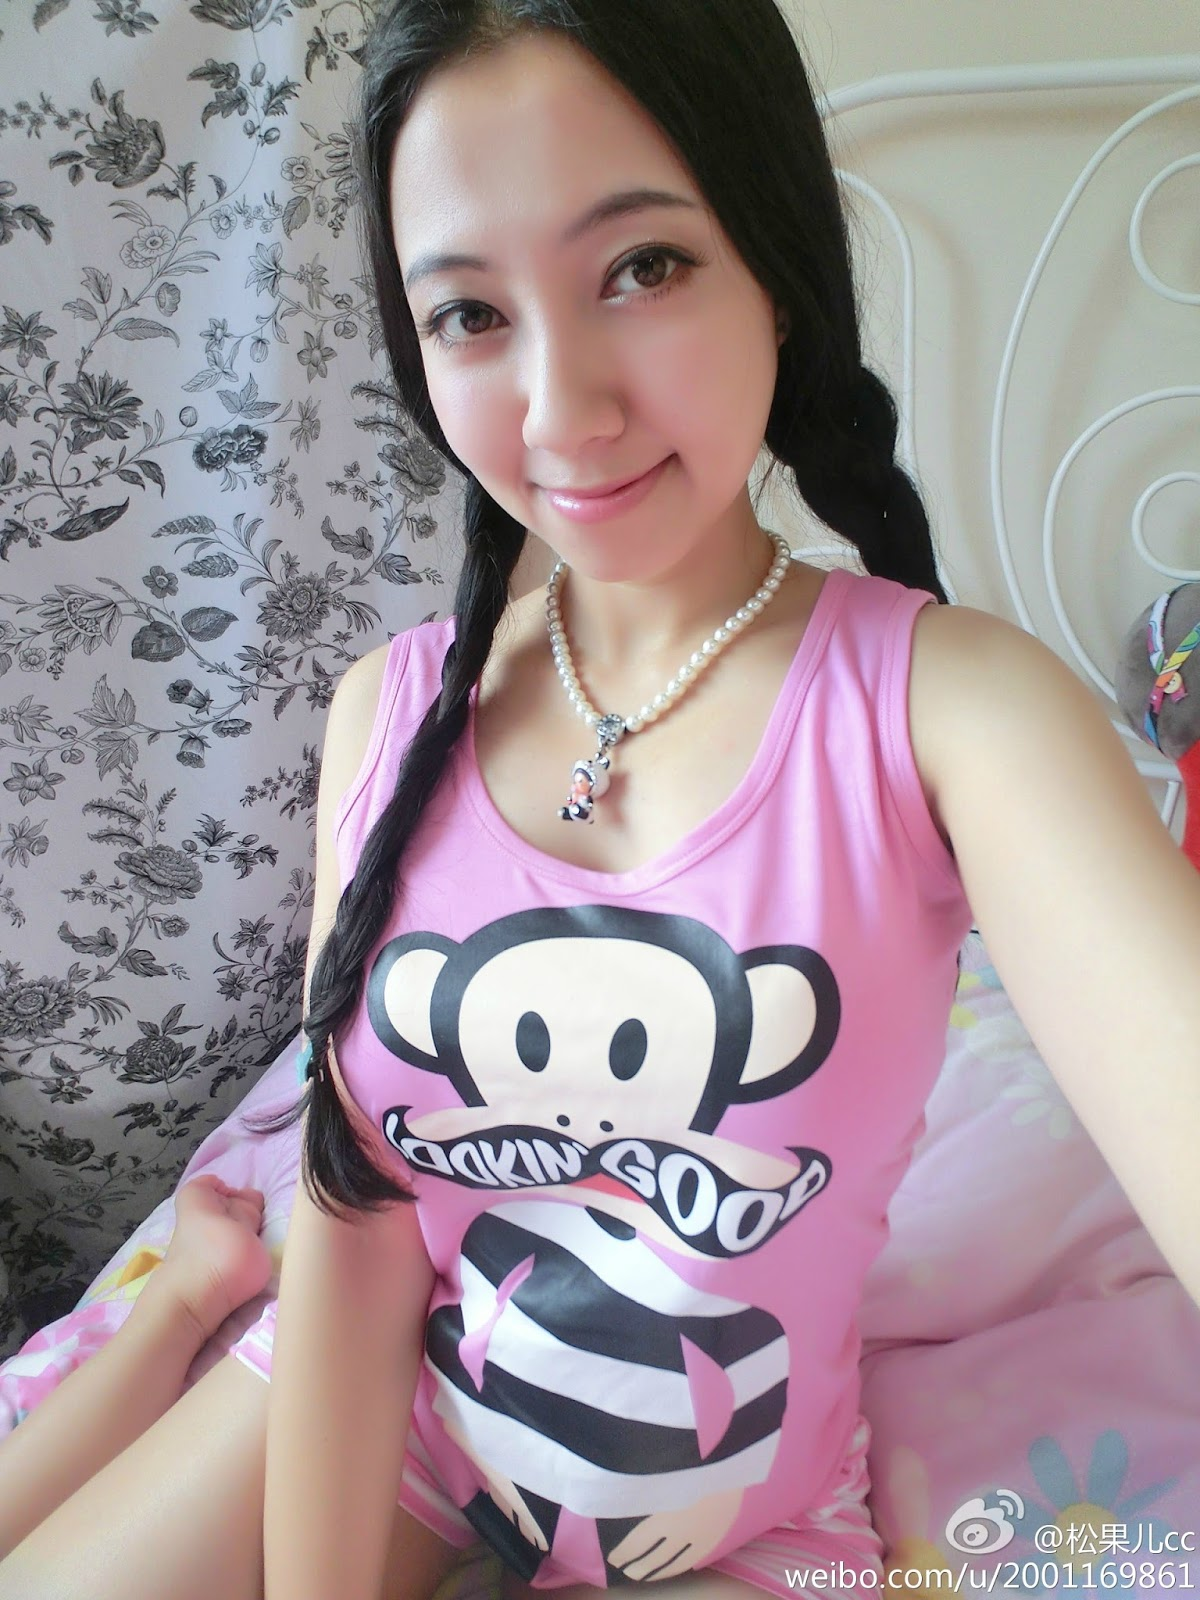 Pretty Young Chinese Song Guo Er 宋國洱 Undressing Topless With Big Size Breast